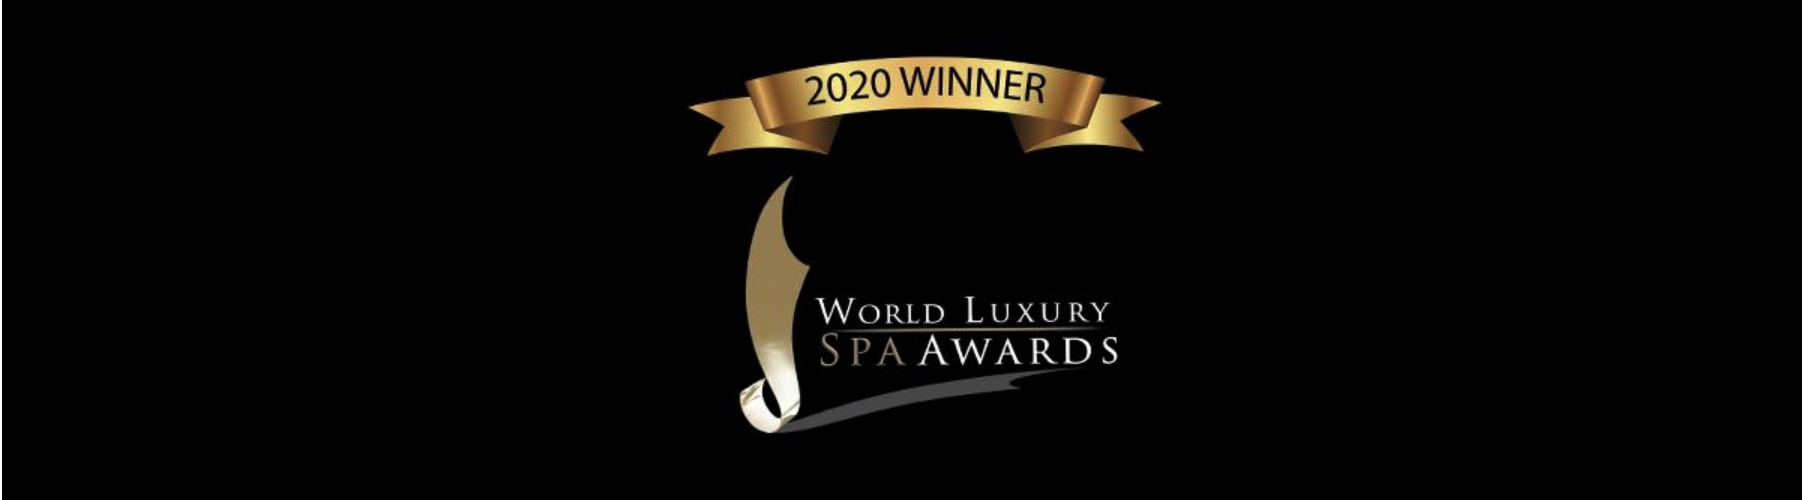 Both VIVAMAYR Medical Spas win Best Medical Spa at the World Luxury Spa Awards 2020